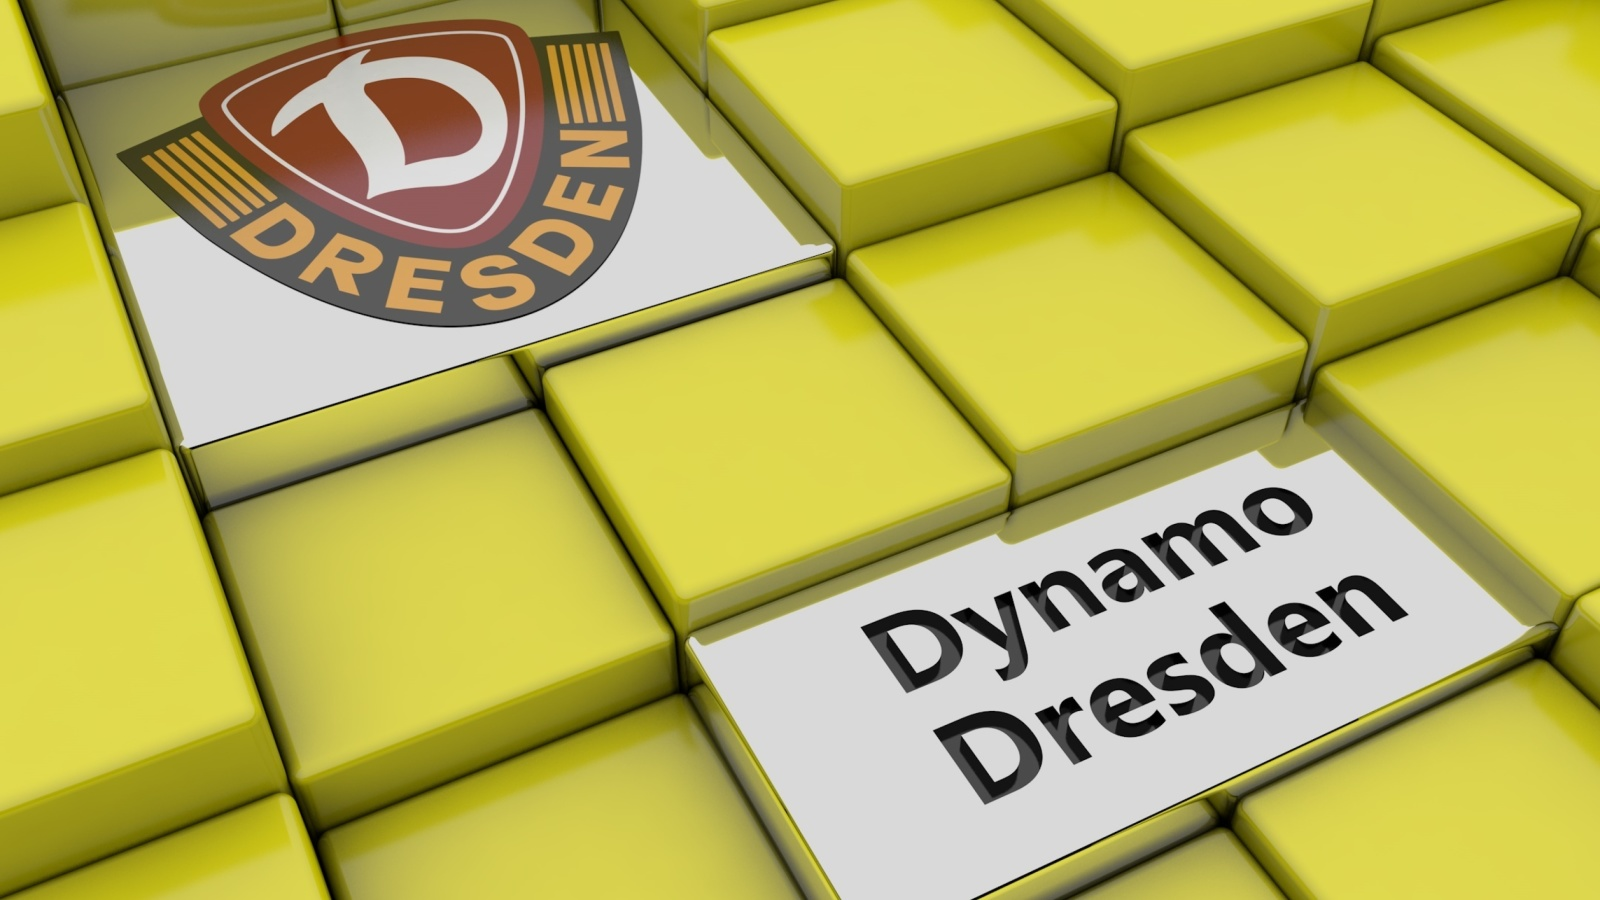 Dynamo Dresden screenshot #1 1600x900